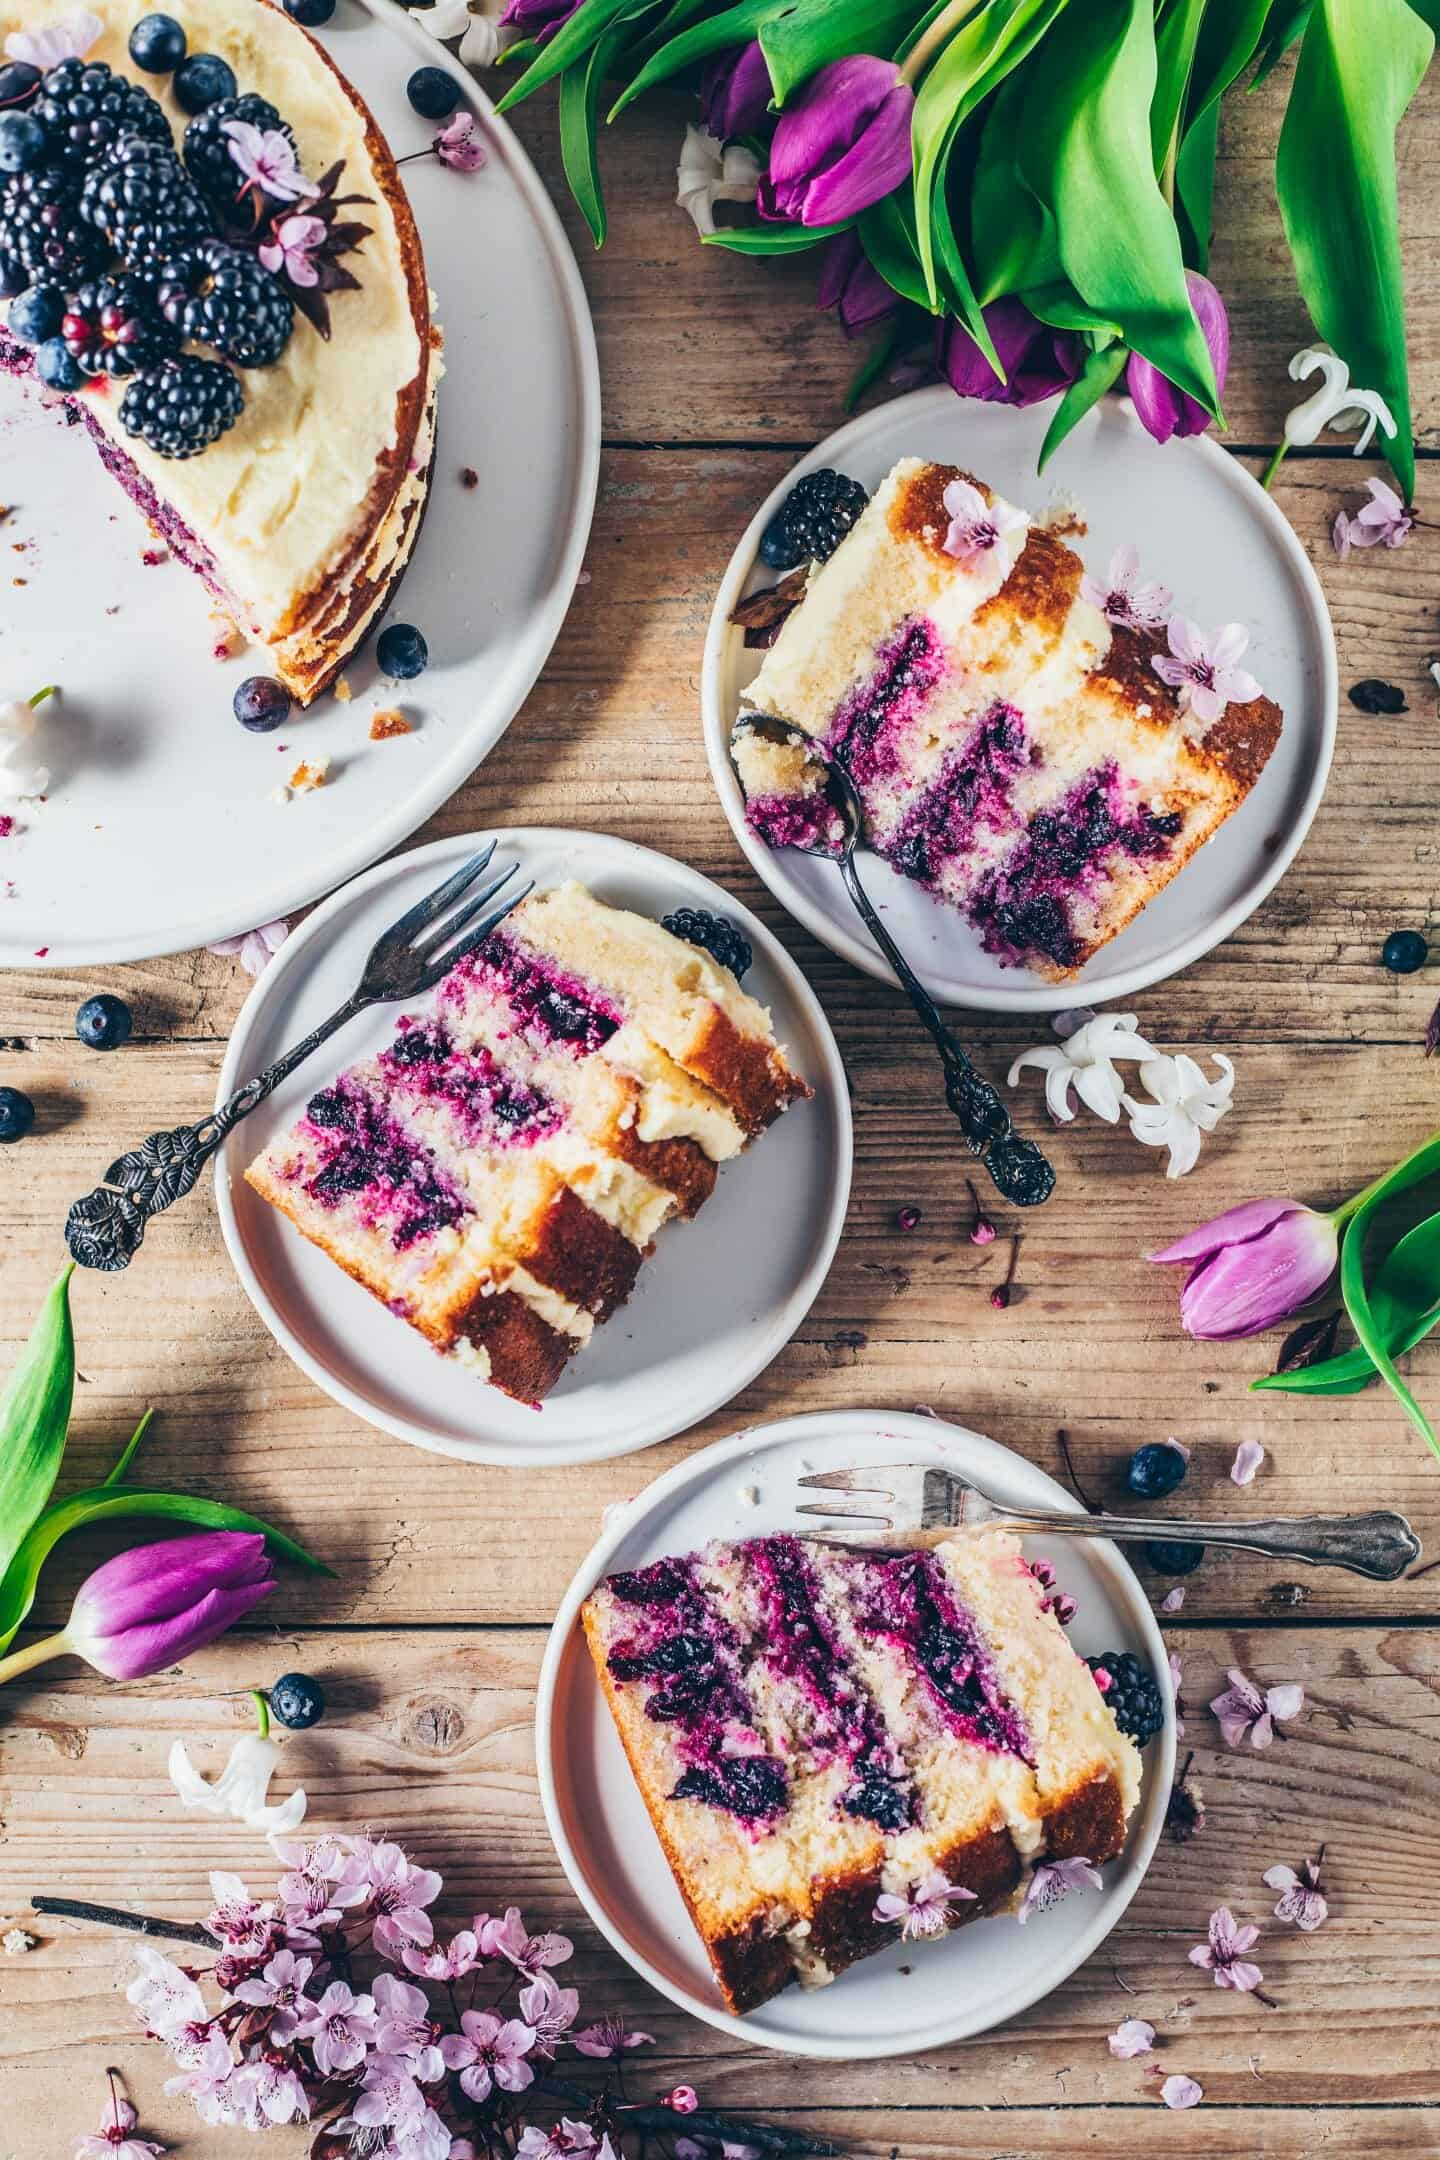 Lemon blueberry cake is a vegan layer cake with creamy lemon frosting and blueberry filling. It is soft, moist, delicious. Perfect dessert for Easter. Gluten-free, egg-less recipe.